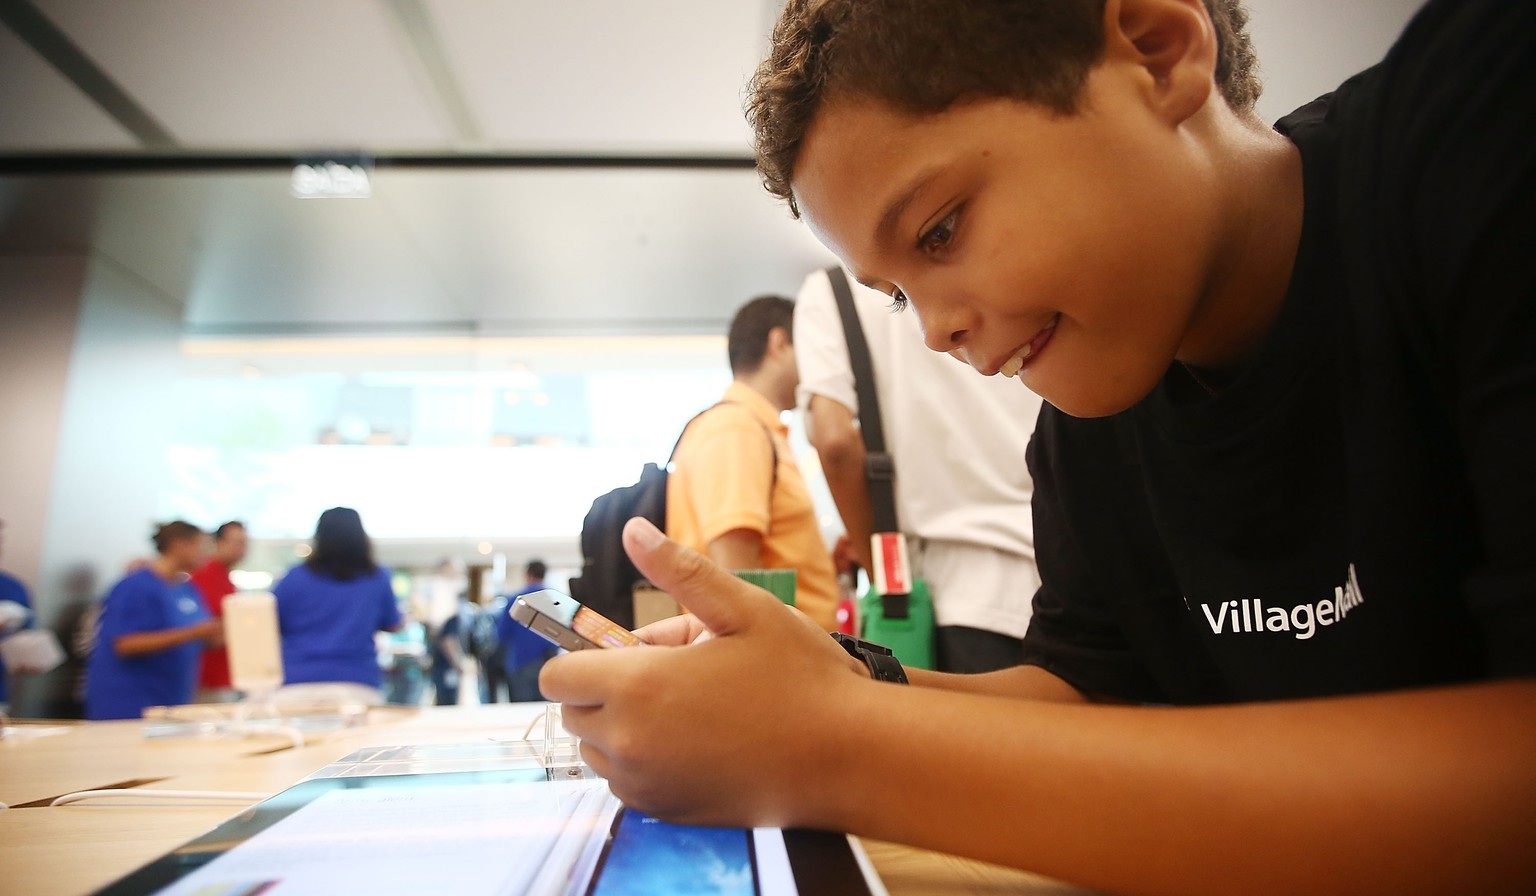 RIO DE JANEIRO, BRAZIL - FEBRUARY 15:  A boy plays with an iPhone in Brazil's first Apple retail store minutes after it opened to the public for the first time in the Village Mall shopping center on February 15, 2014 in Rio de Janeiro, Brazil. The store is a 'pavilion' design with a 100-foot curved glass panel in front and opens to the public four months before the 2014 FIFA World Cup. It is Apple's first physical store in South America.  (Photo by Mario Tama/Getty Images)